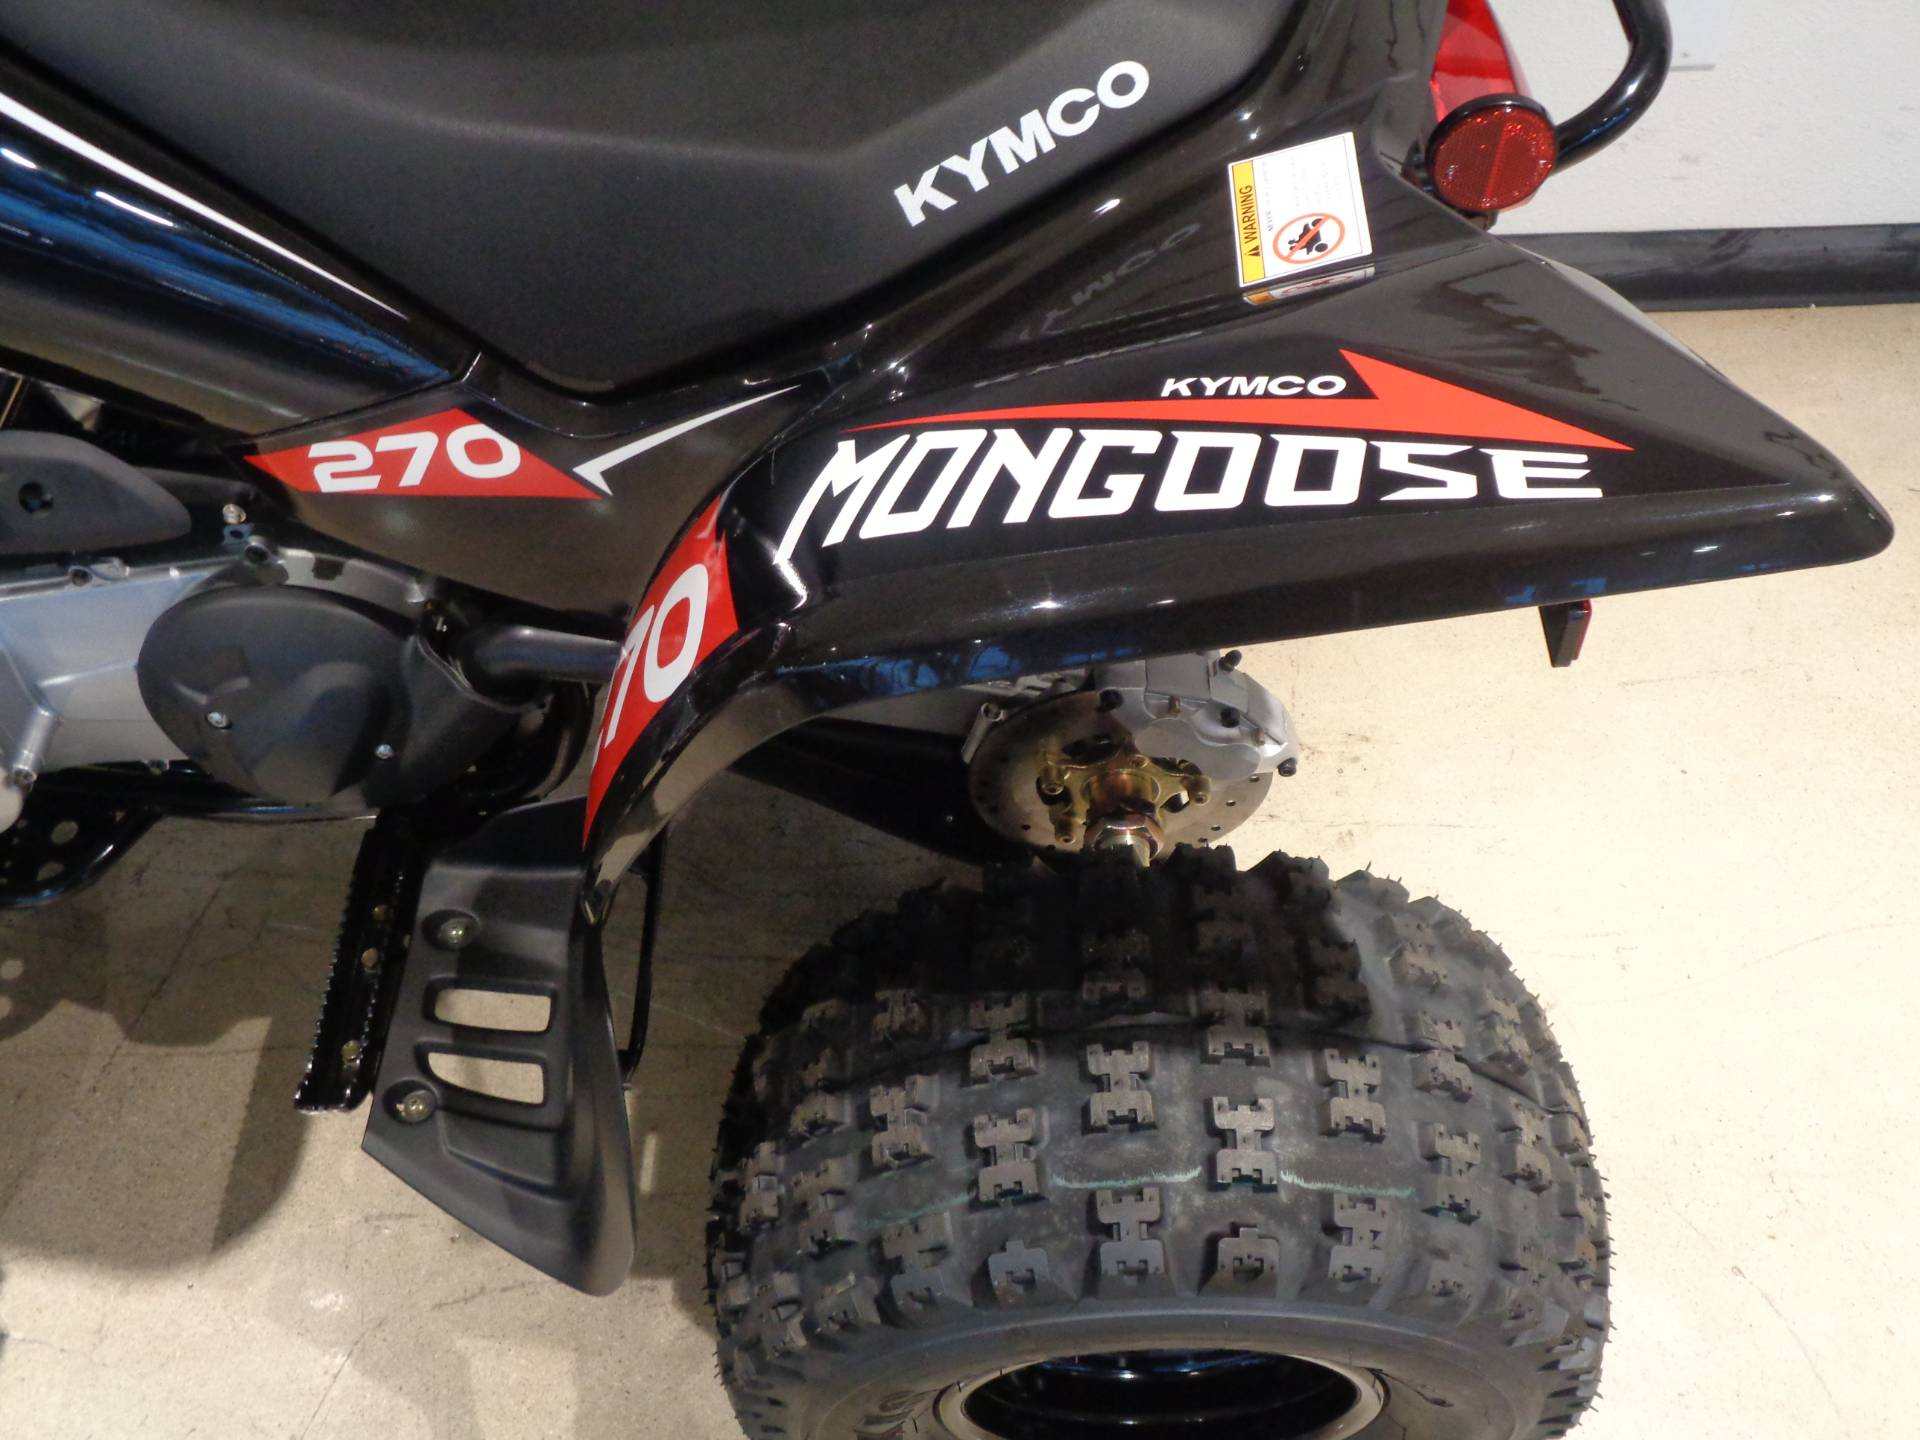 2020 Kymco Mongoose 270 in Chula Vista, California - Photo 17